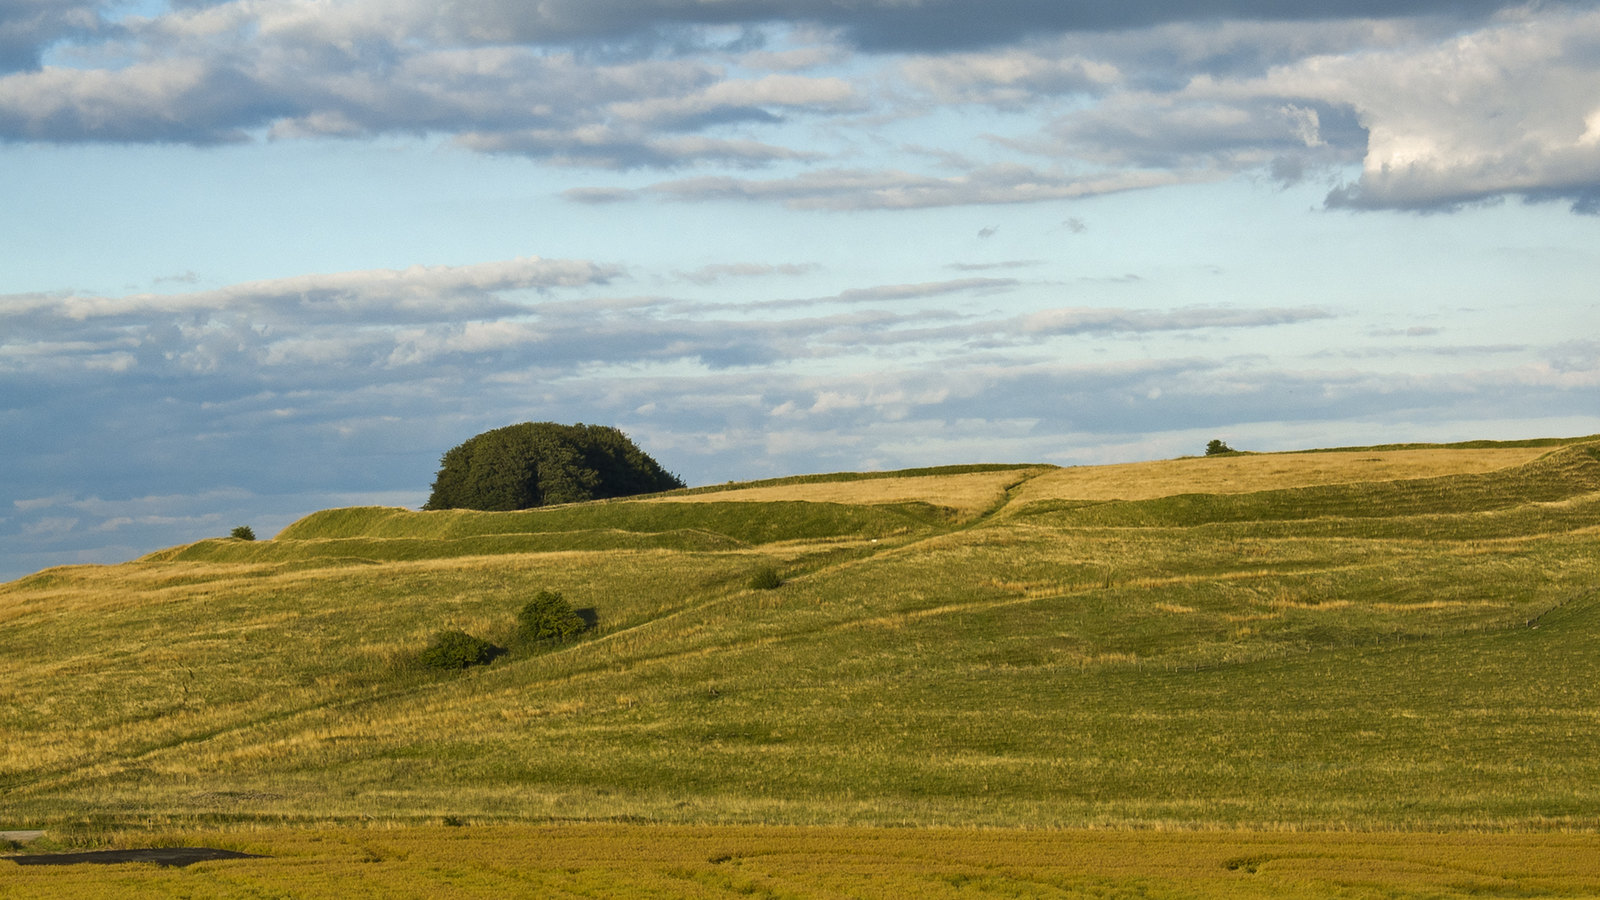 Barbury Castle from the South